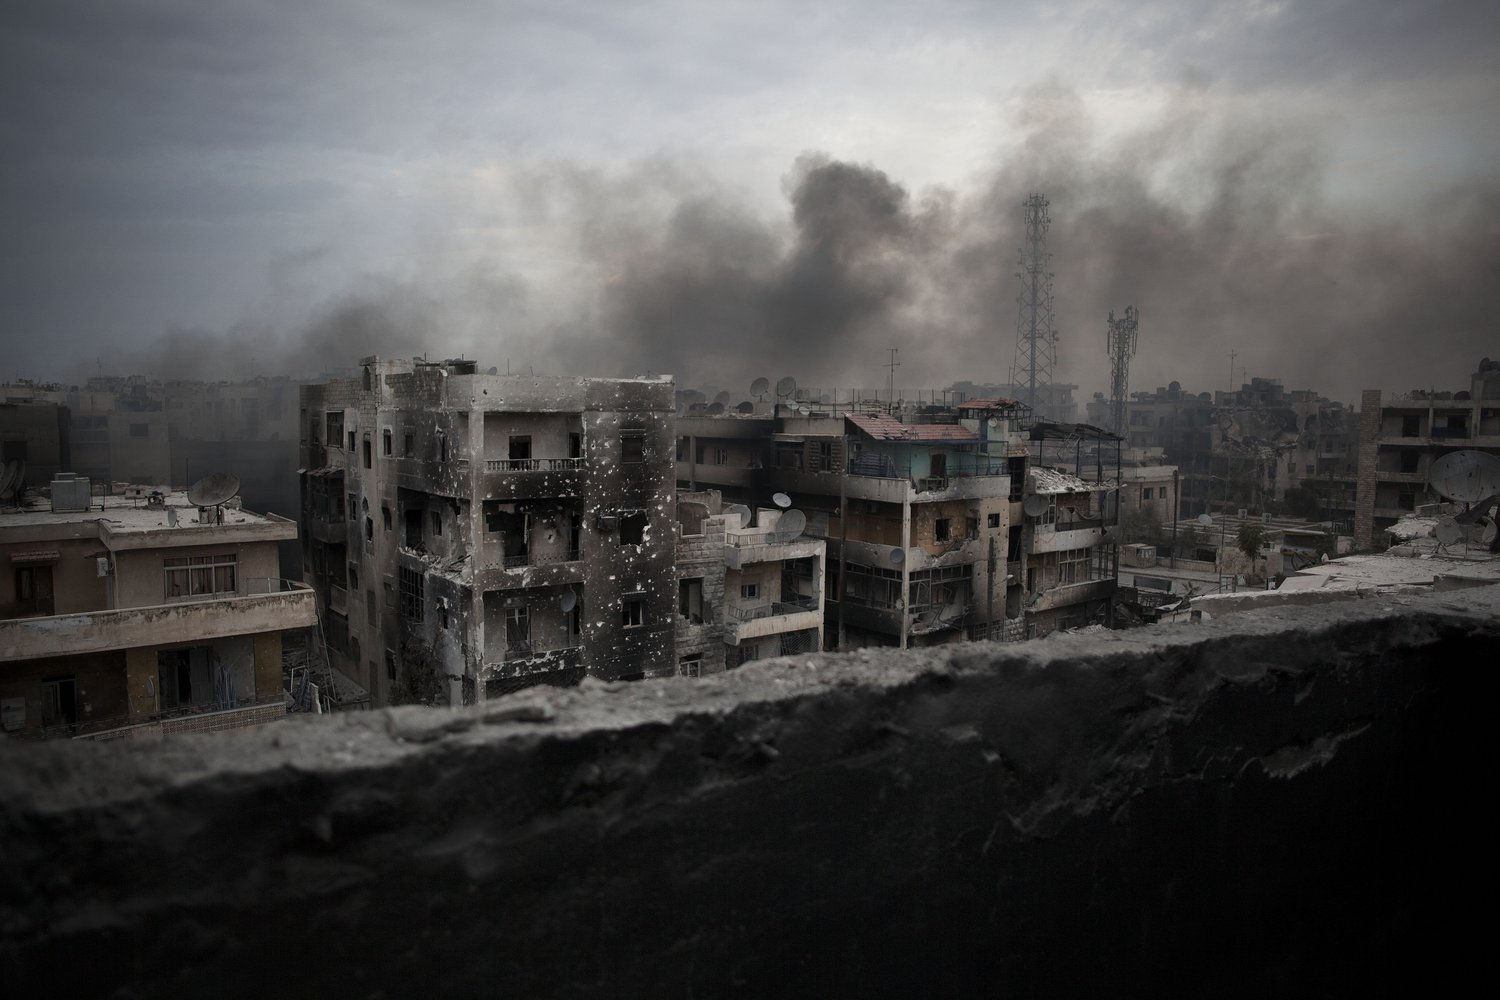 BREATHING LIFE INTO SYRIA: THE REVIVAL OF A WAR-TORN NATION